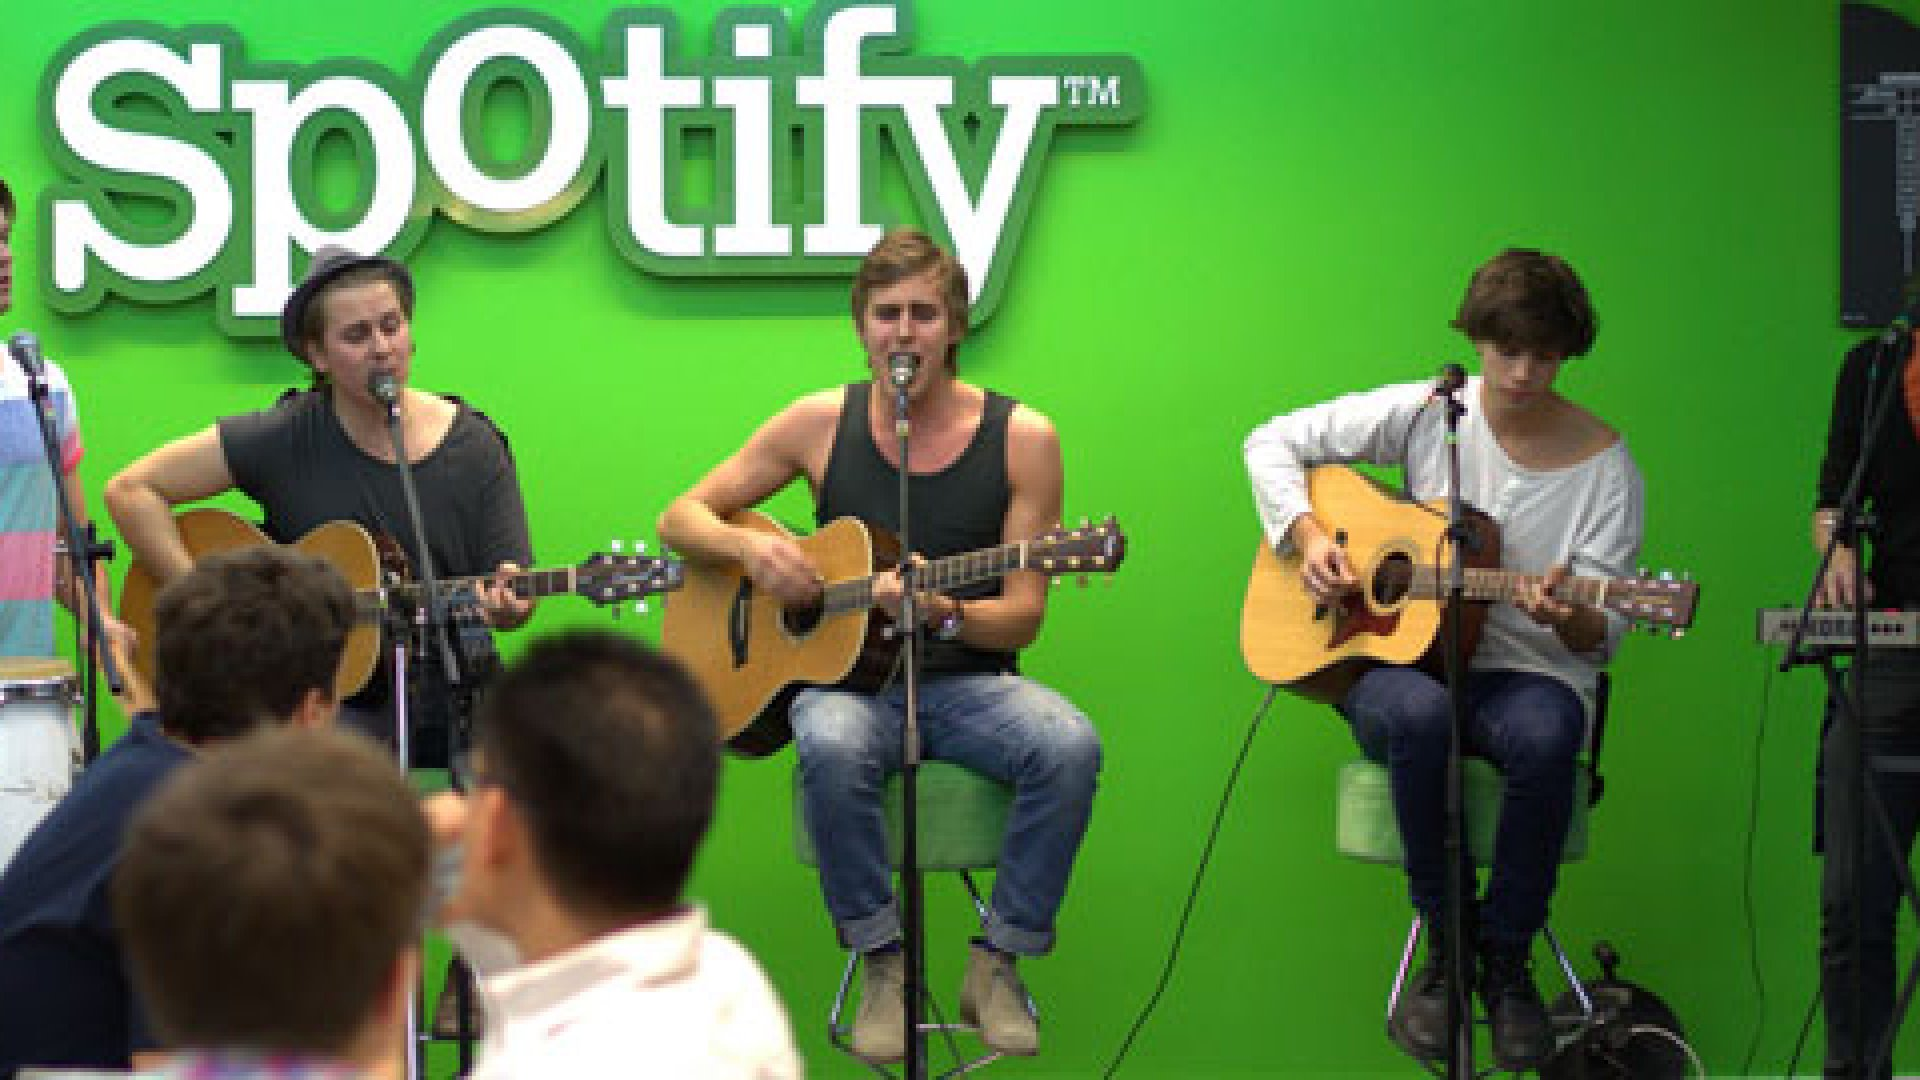 Swedish band Coby Core plays at the Spotify offices.